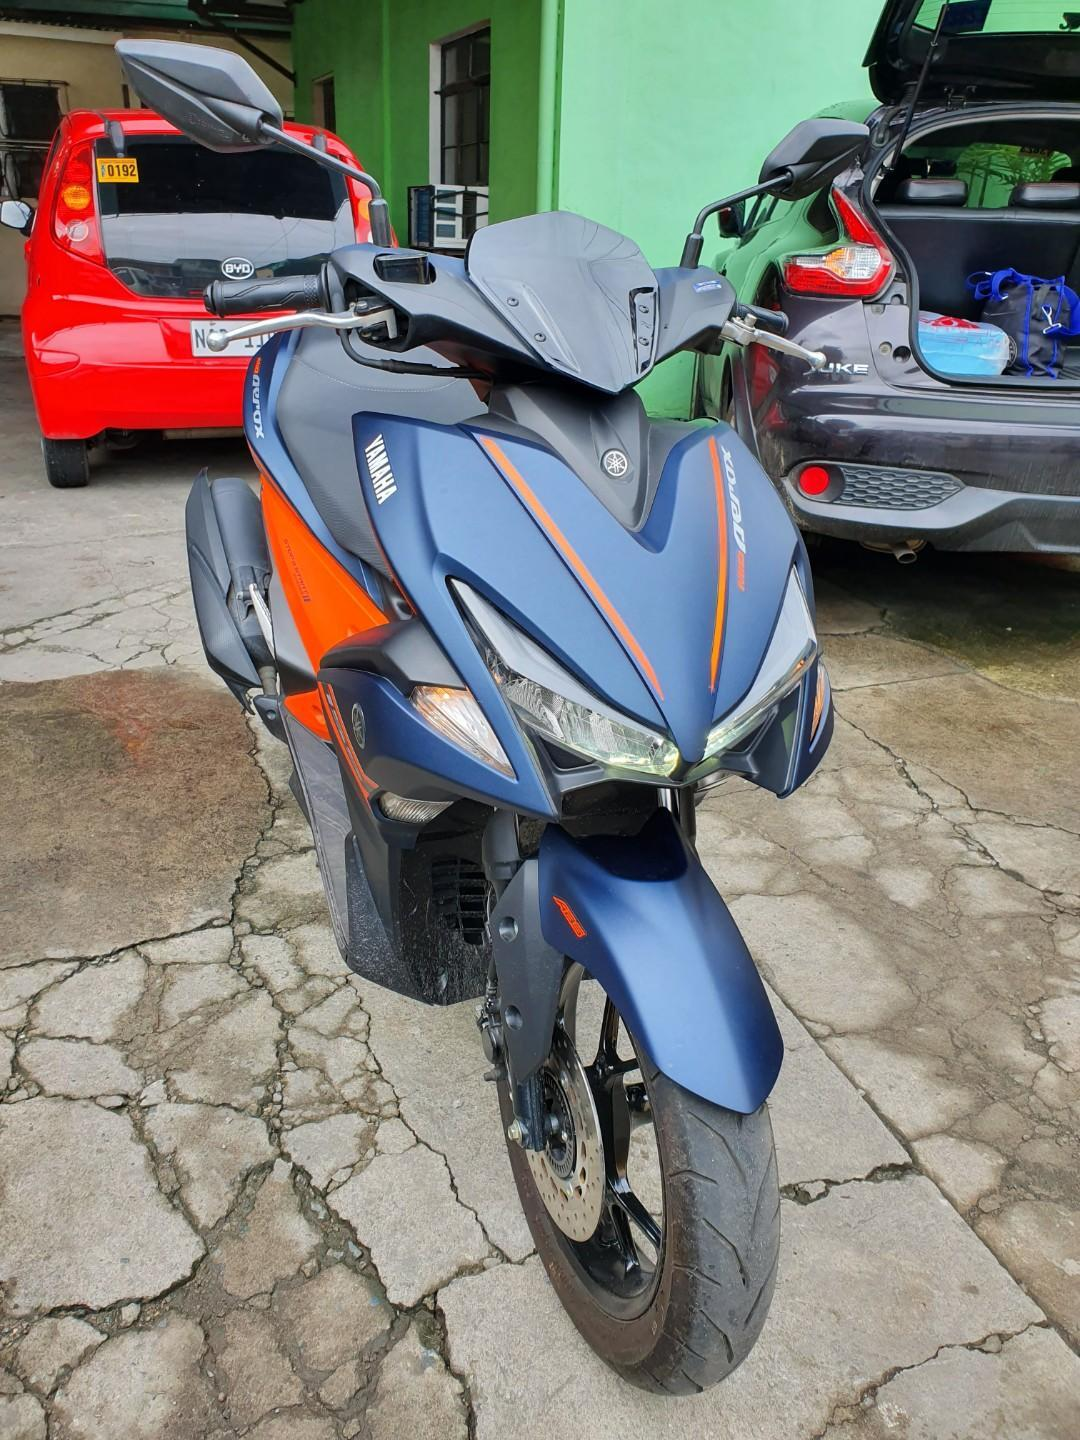 Aerox 155 2019 Year Model (ABS) photo